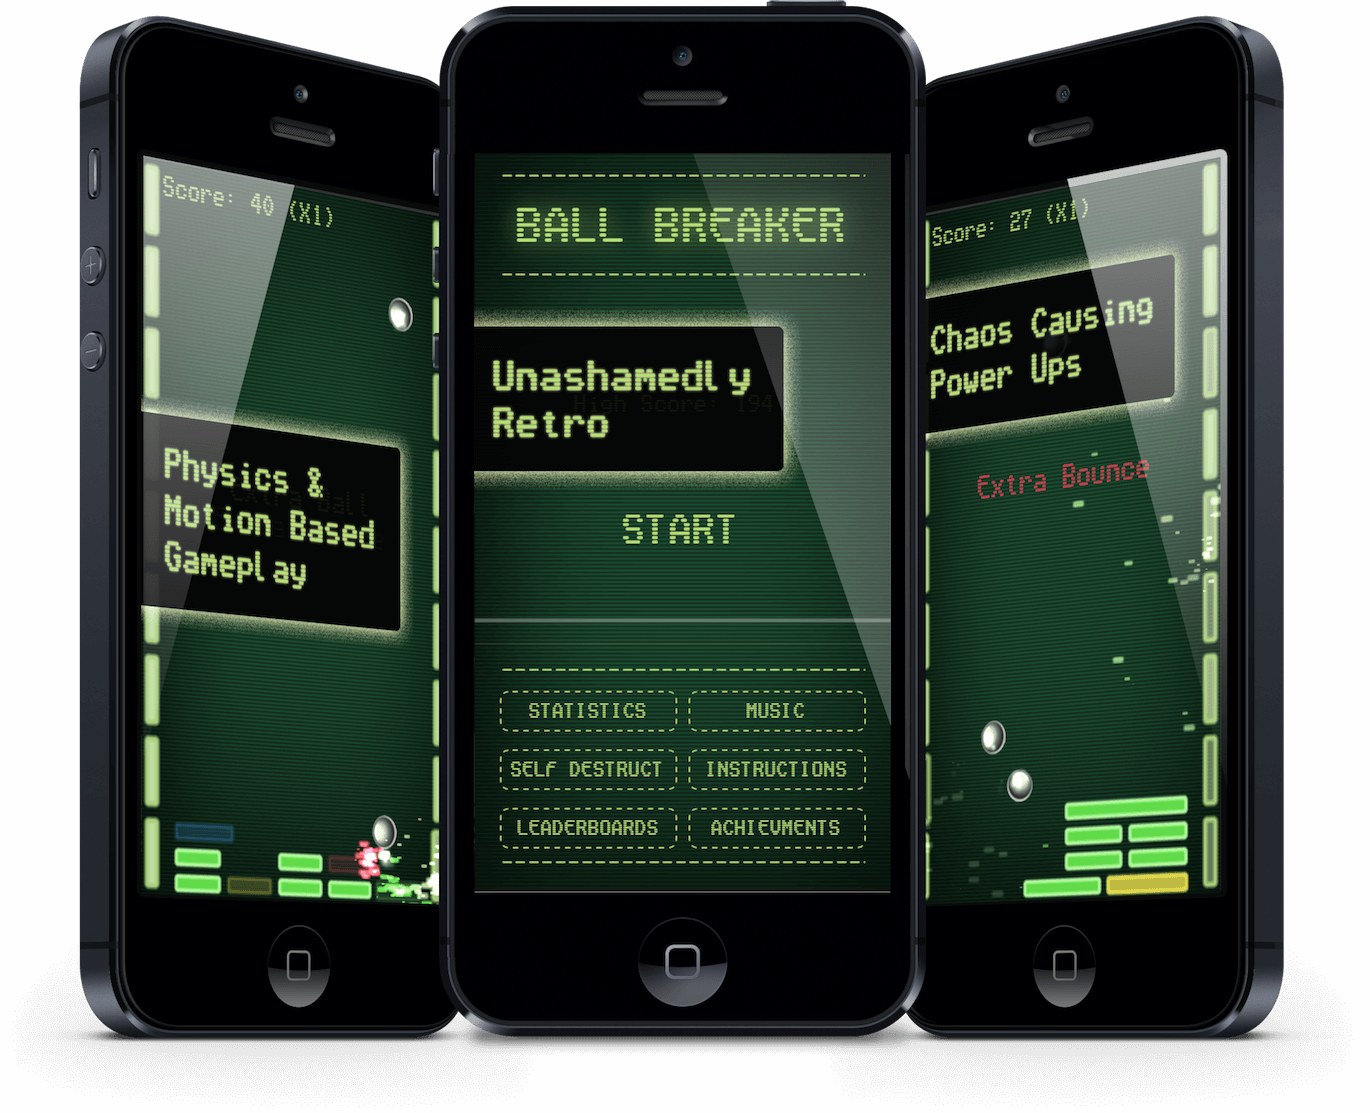 Ball Breaker iOS app running on 3 iPhone 5 devices, side by side on various screens